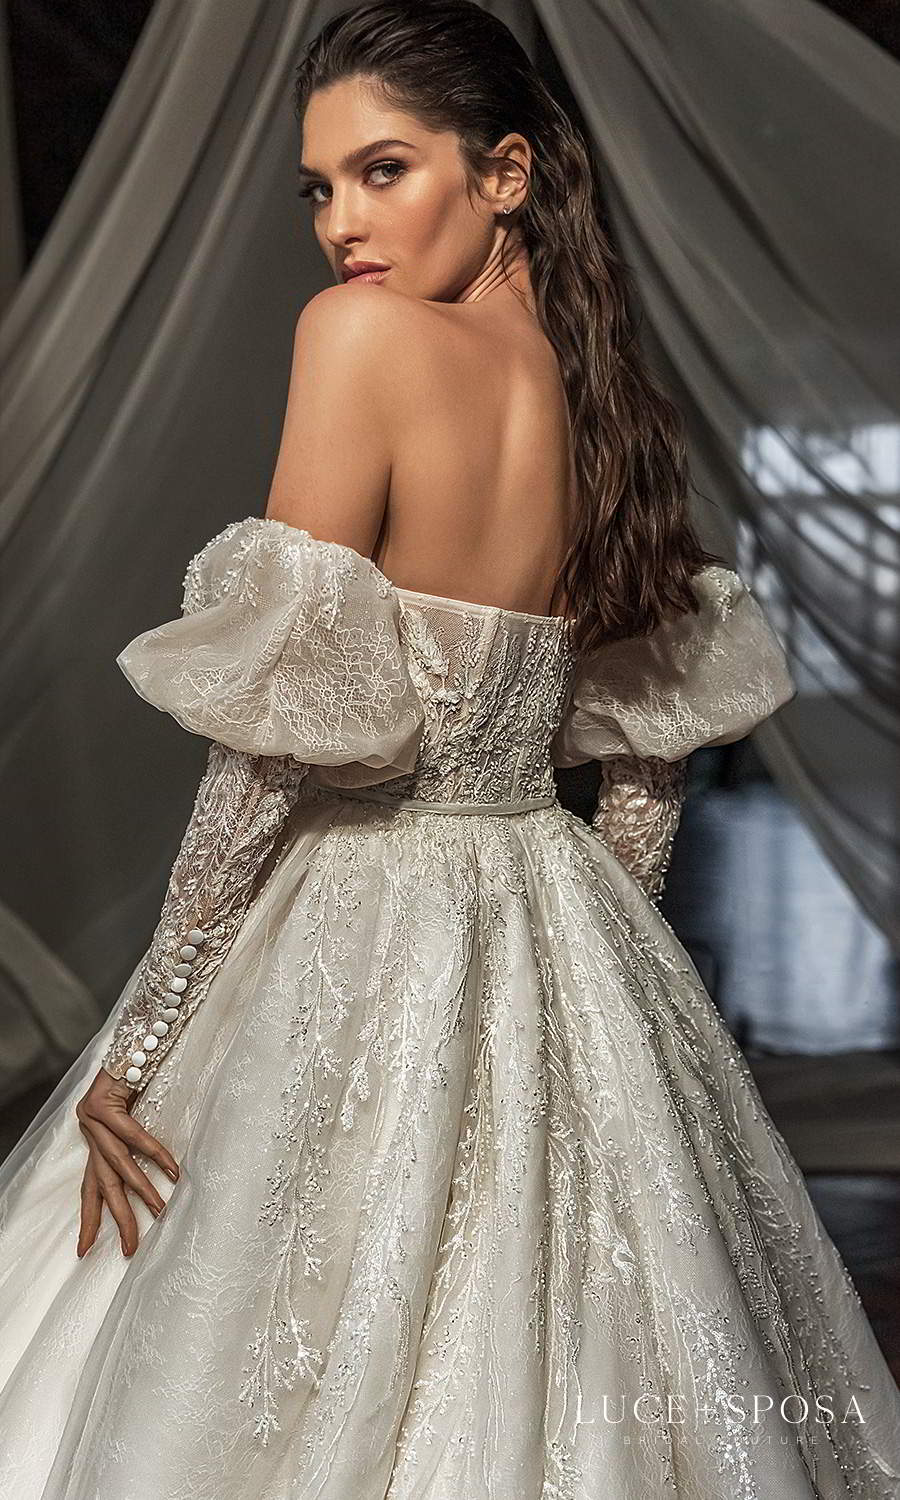 luce sposa 2021 shades of couture bridal detached long puff sleeves strapless sweetheart neckline fully embellished a line ball gown wedding dress chapel train (jordyn) zbv